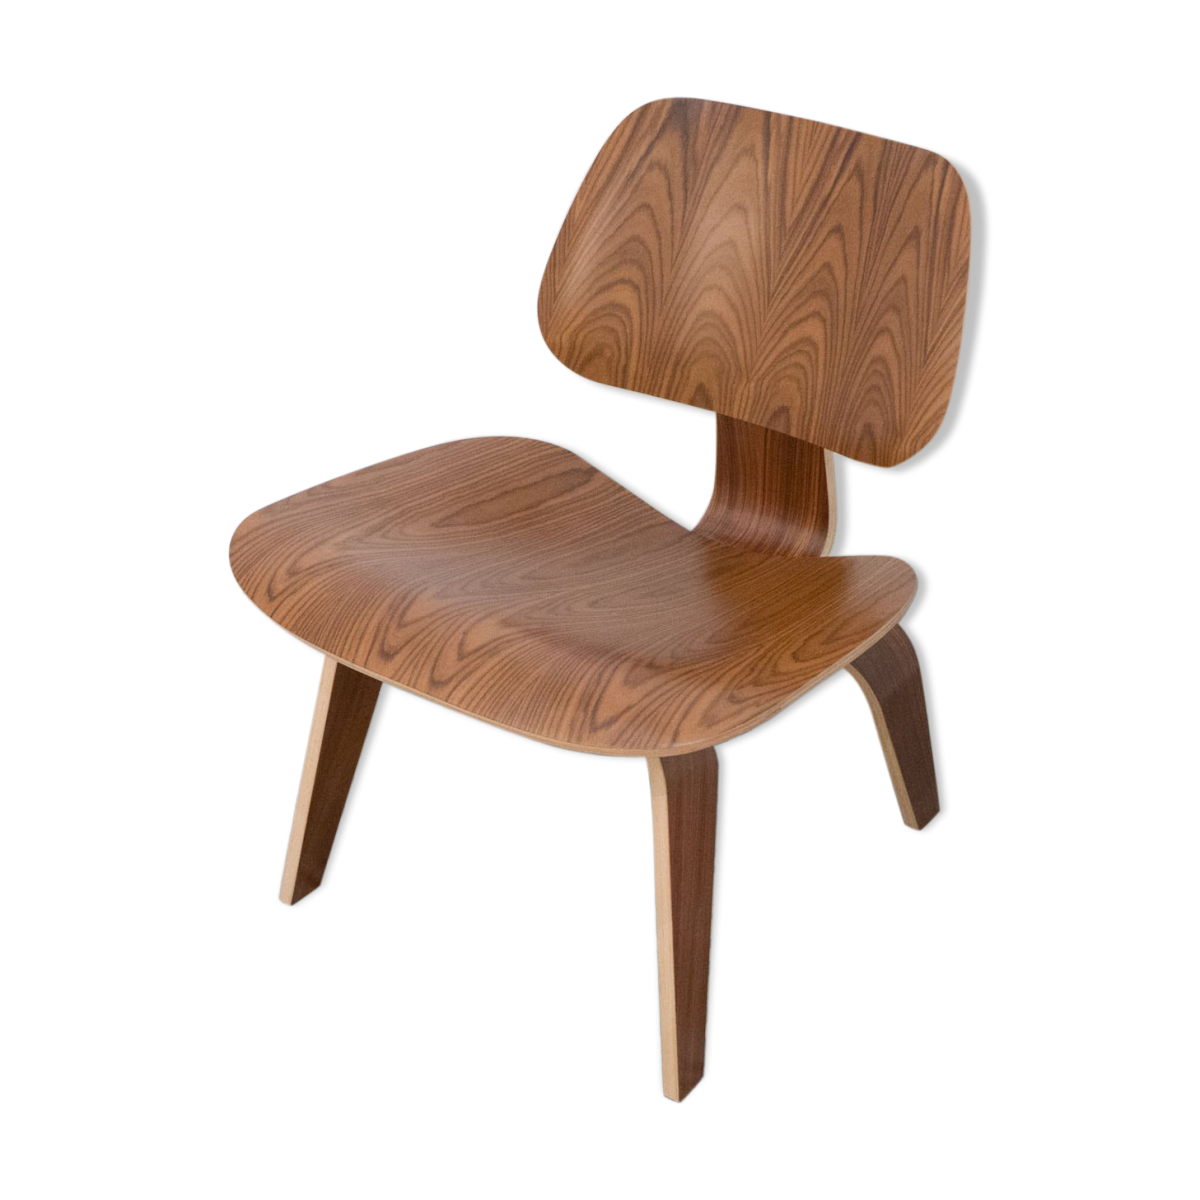 """Chaise """"LCW"""" Herman miller en palissandre, Charles Eames"""